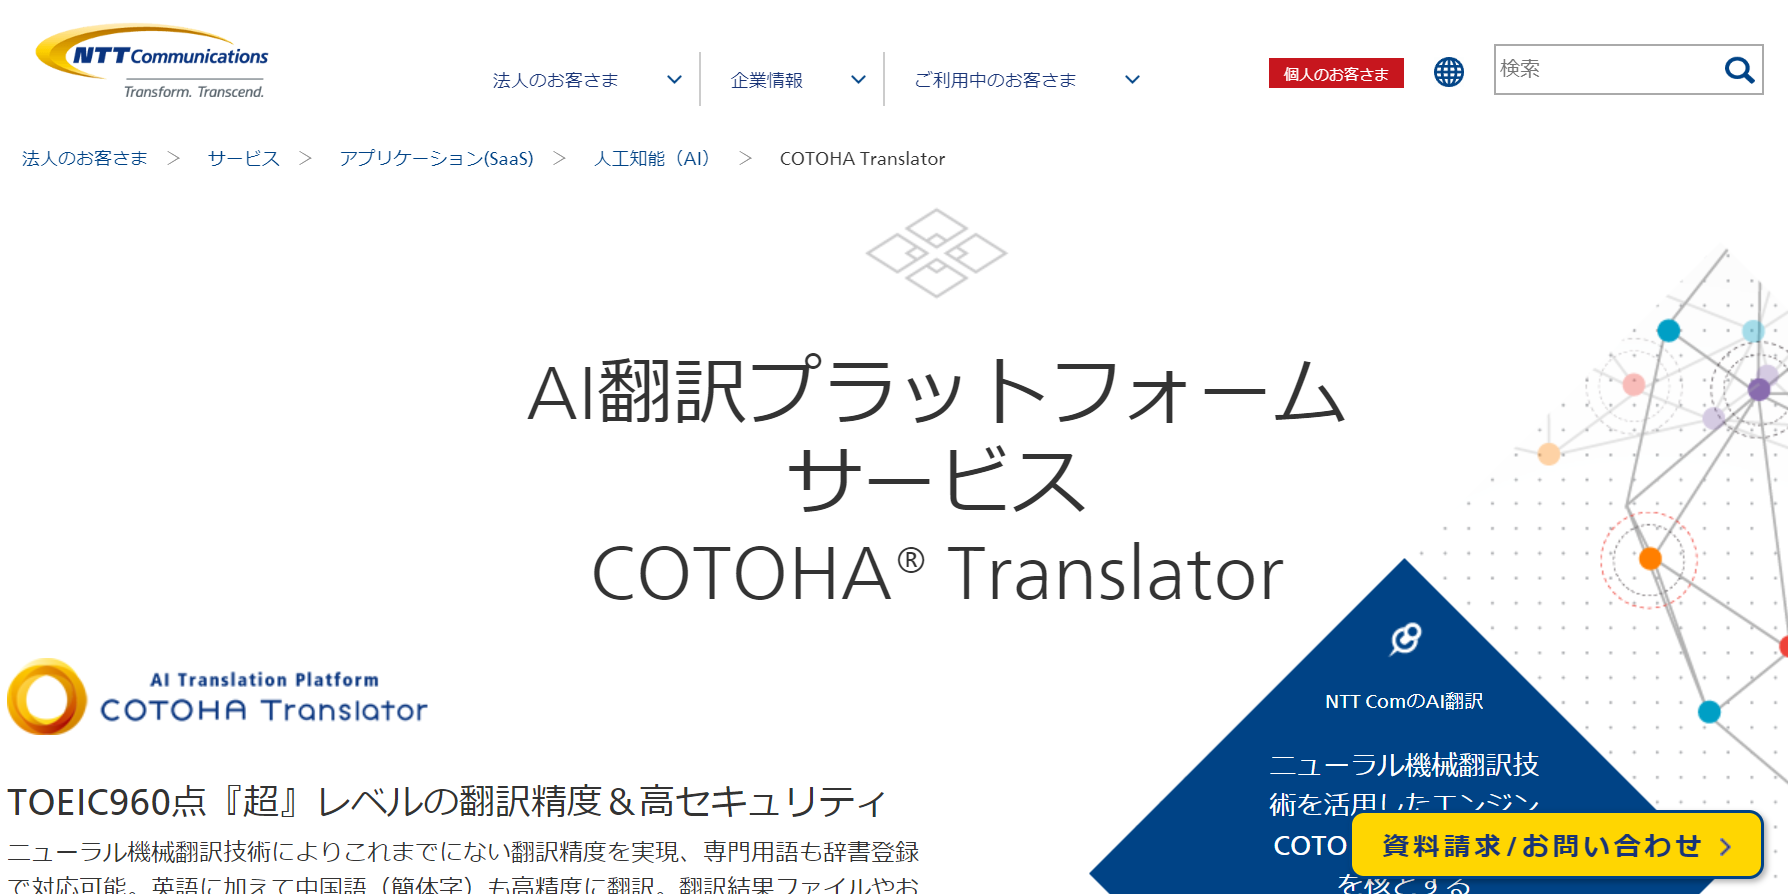 COTOHA Translator